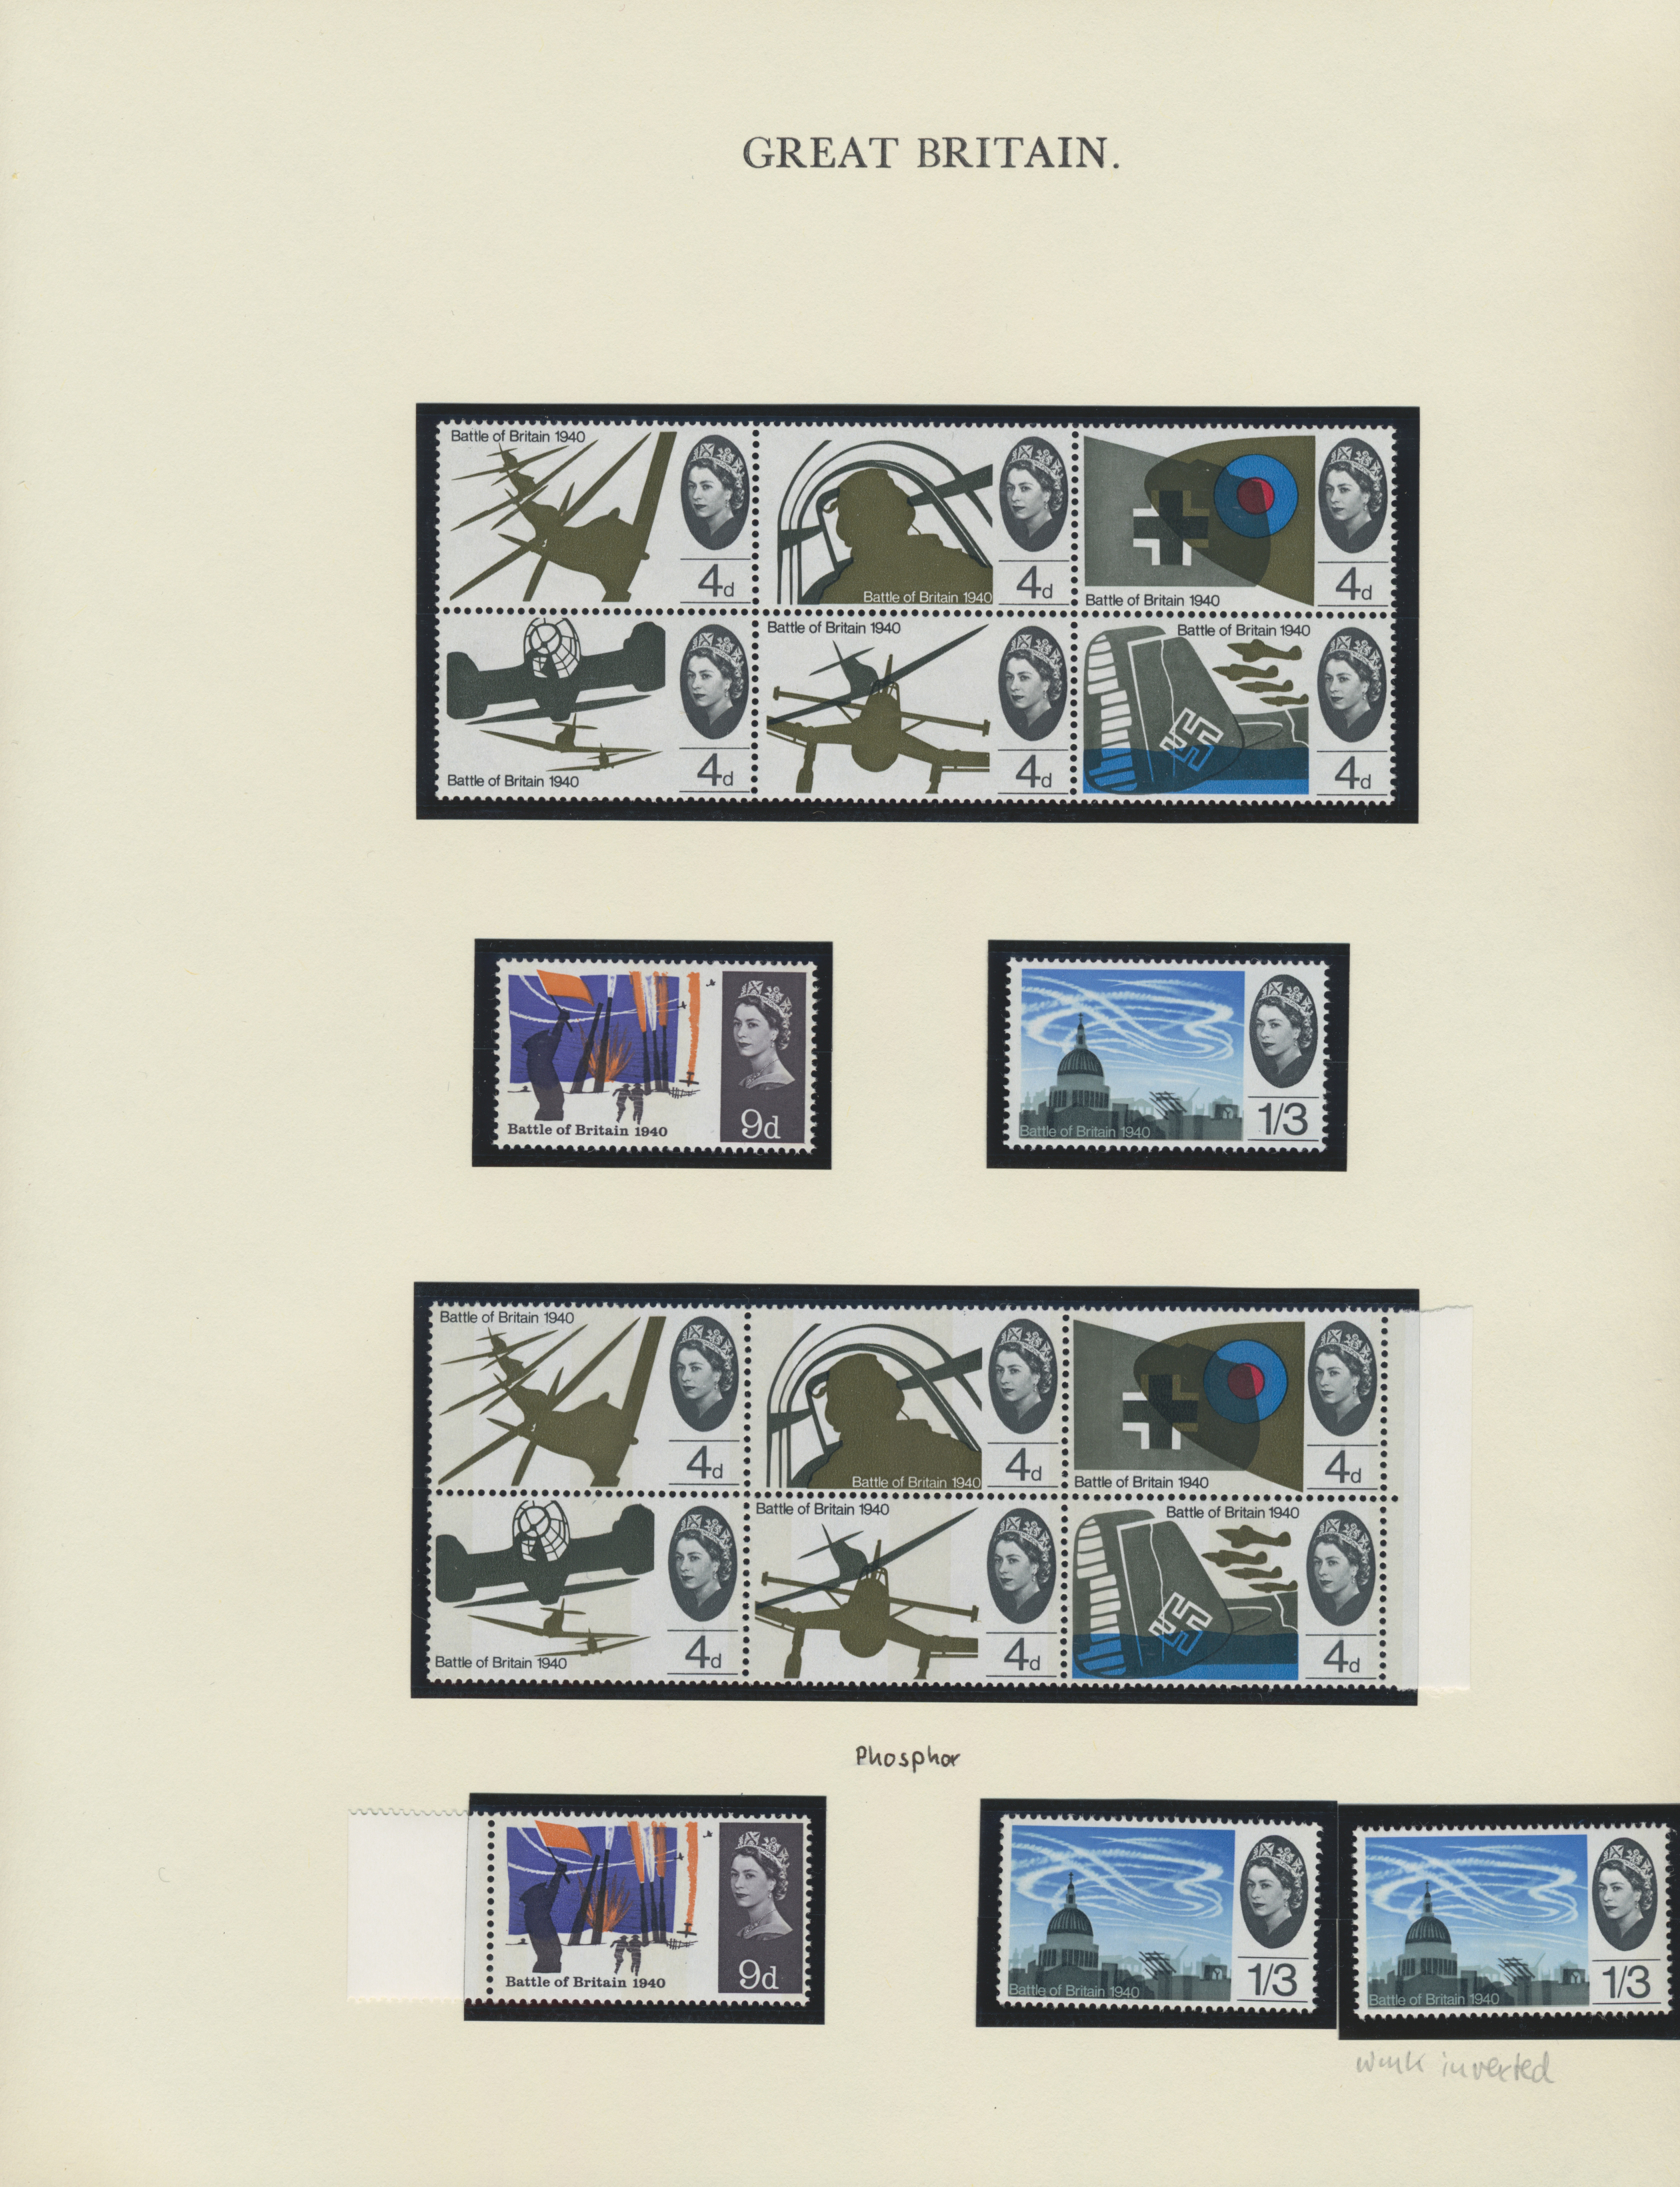 Lot 17096 - großbritannien  -  Auktionshaus Christoph Gärtner GmbH & Co. KG Sale #48 collections Overseas  Airmail / Ship mail & Thematics